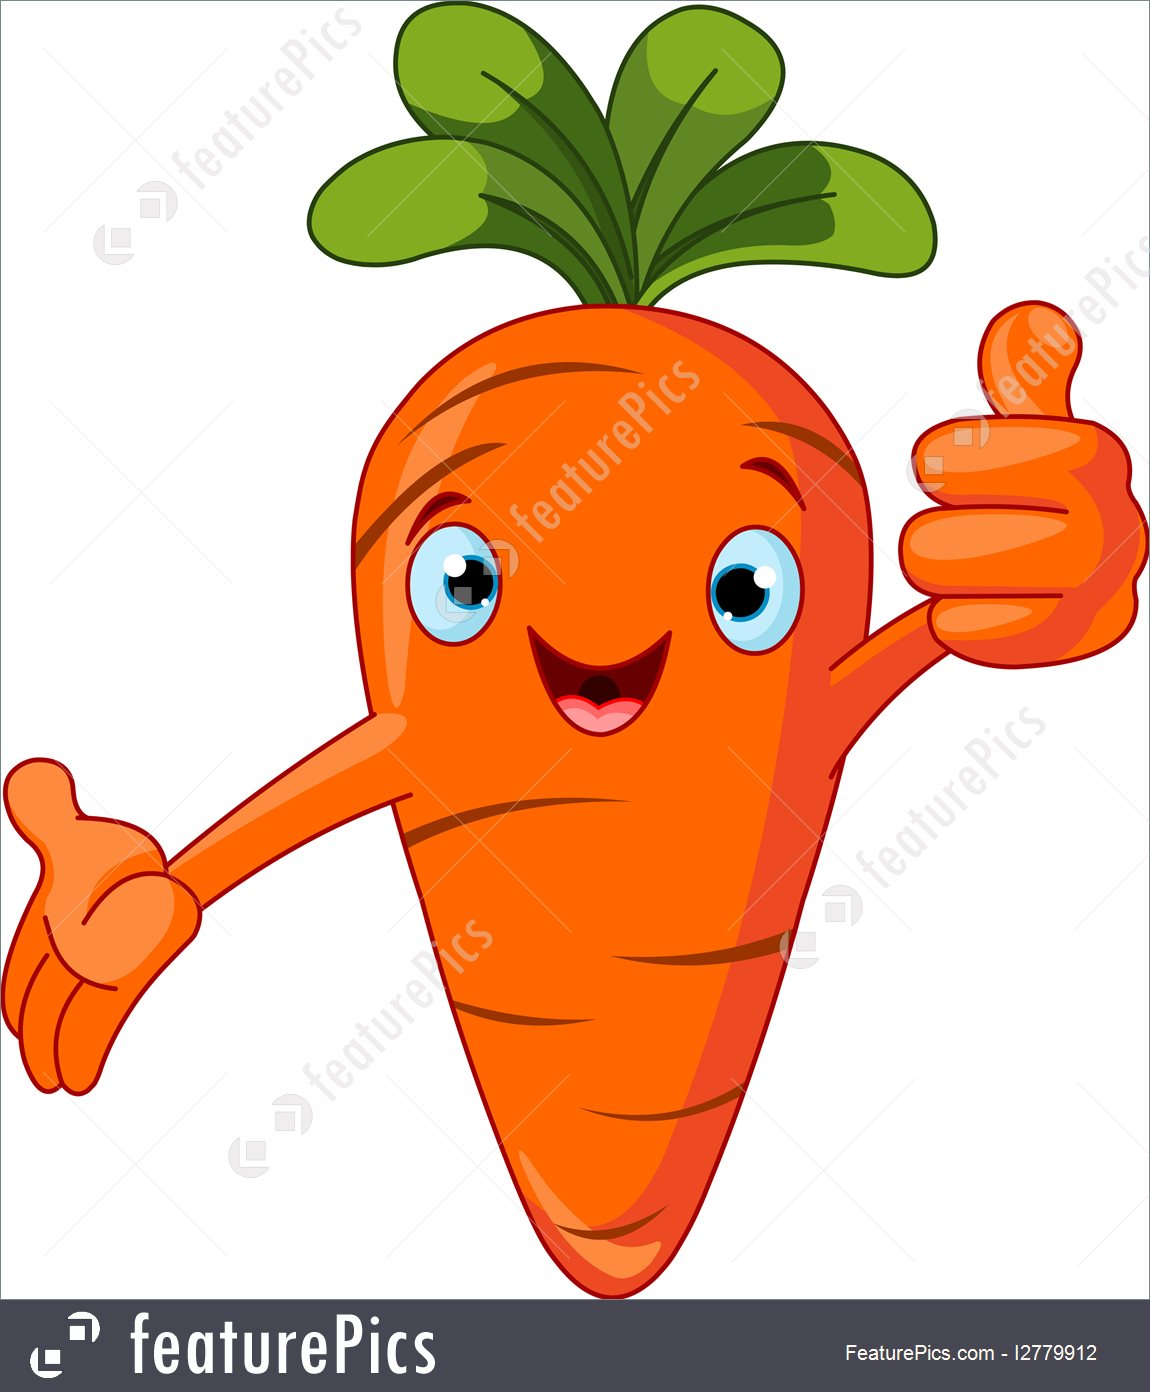 Illustration Of A Carrot Character Givin-Illustration of a Carrot Character giving thumbs up-17